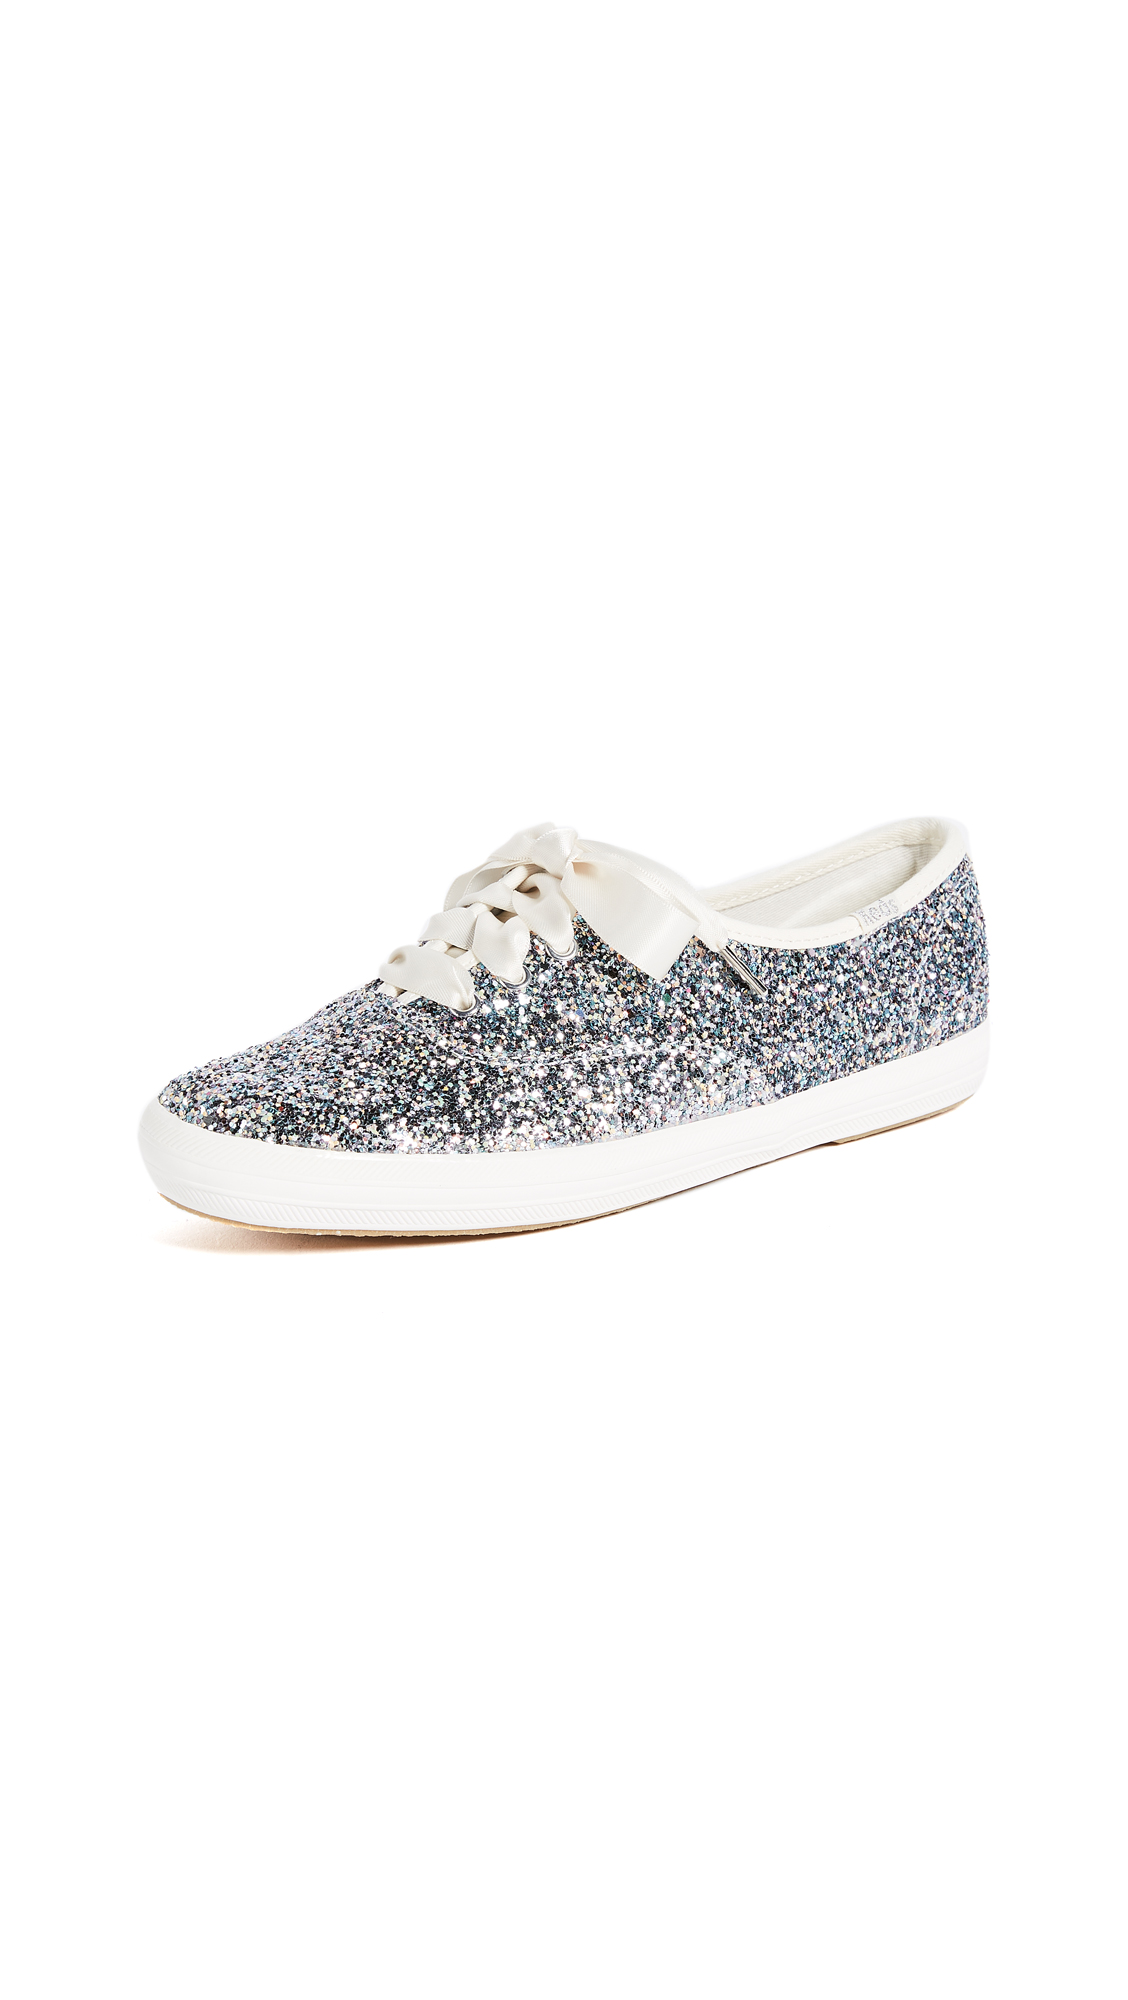 Keds x Kate Spade New York Glitter Sneakers - Glitter